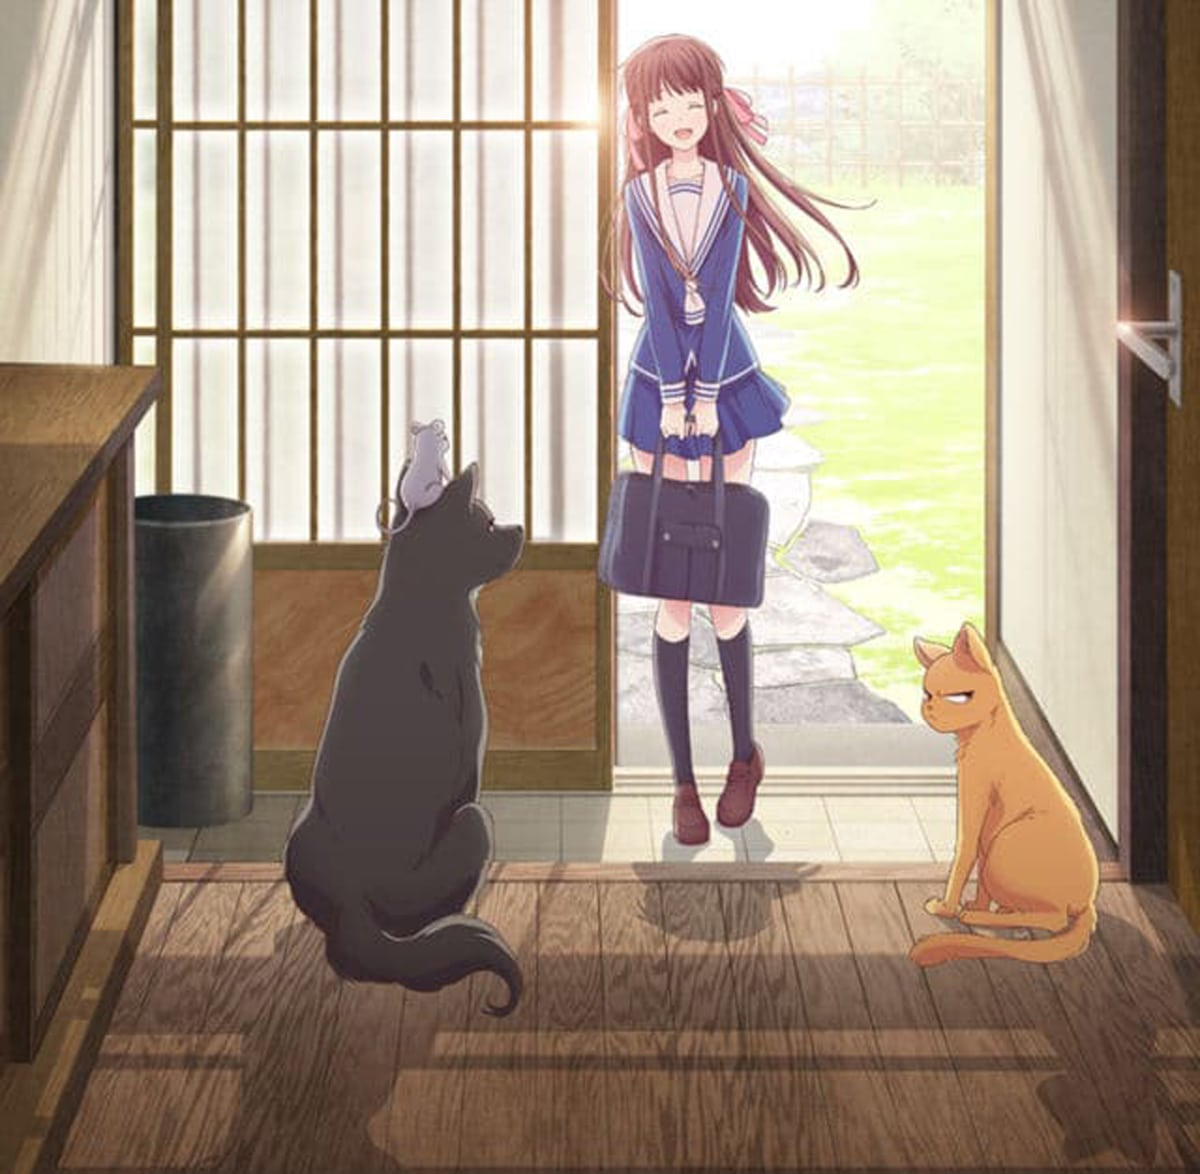 Fruits Basket 2019 Anime New Characters Art Style